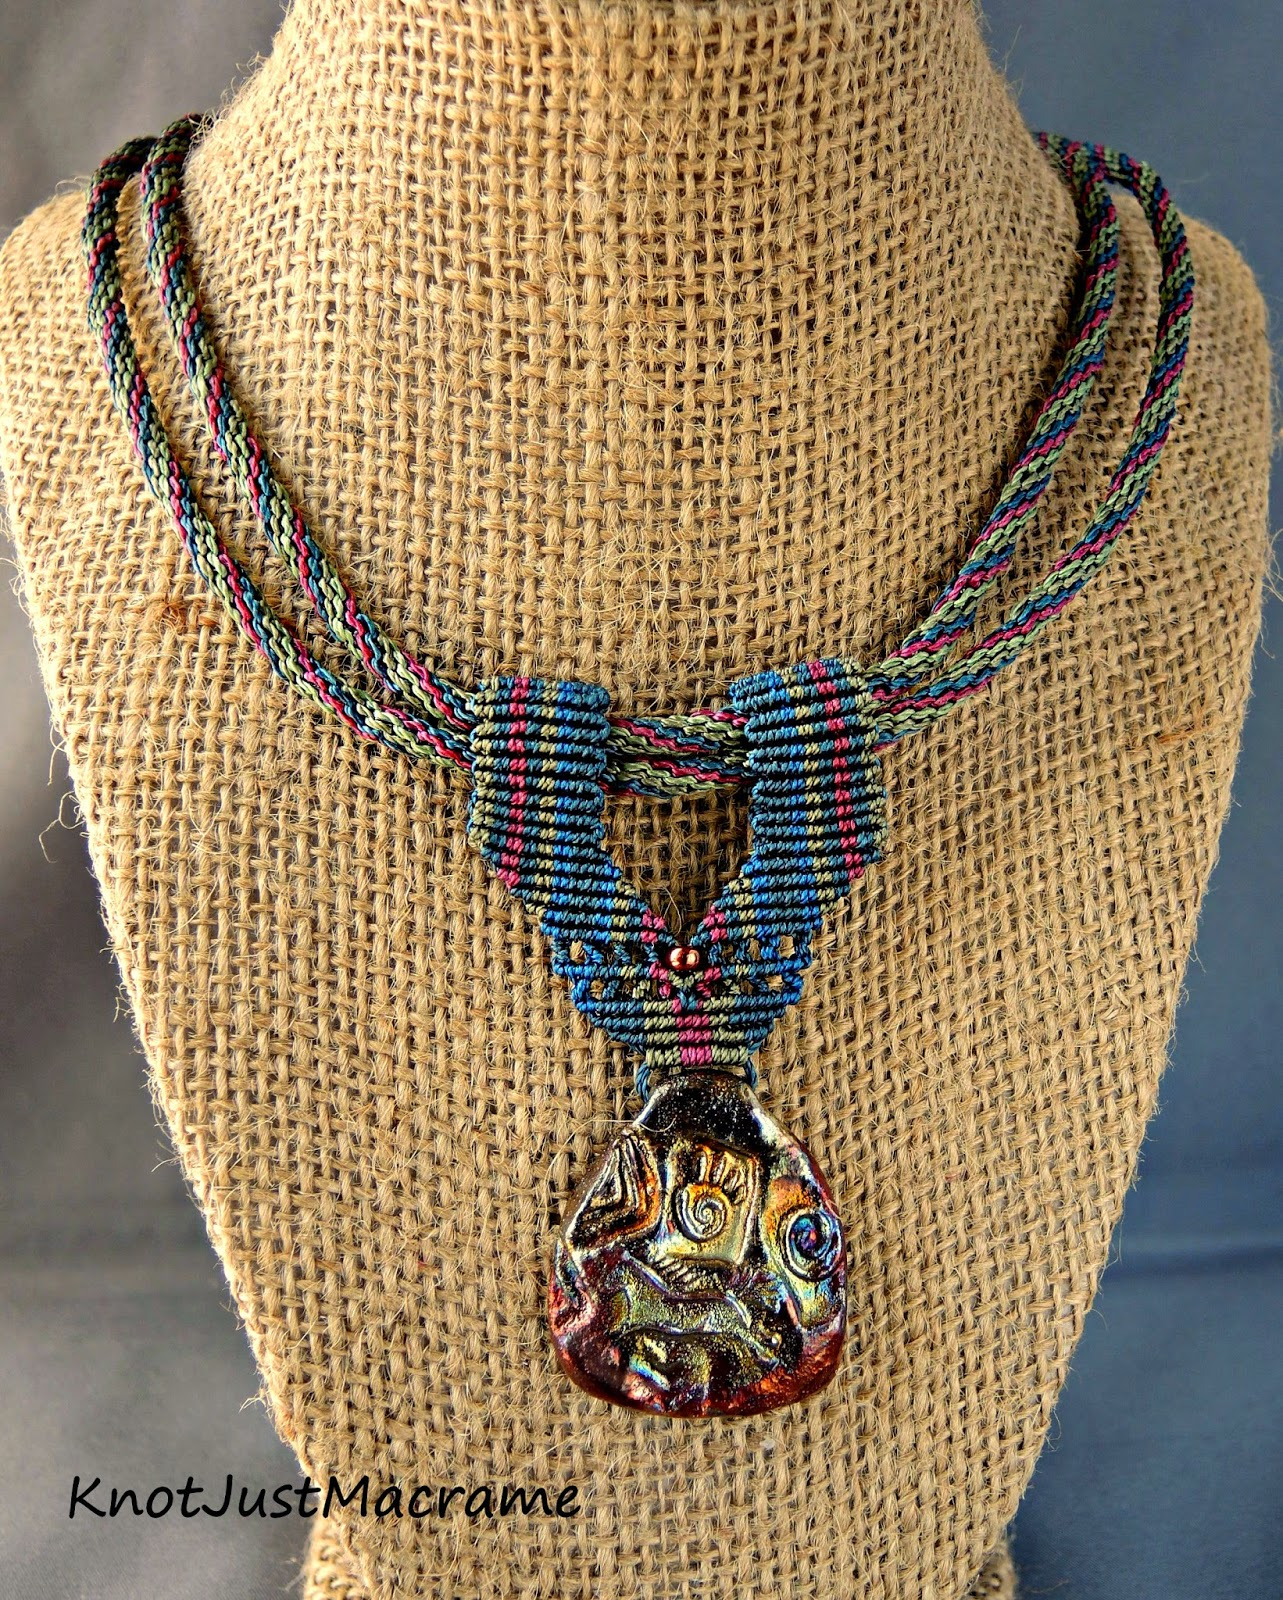 Macrame necklace by Sherri Stokey of Knot Just Macrame.